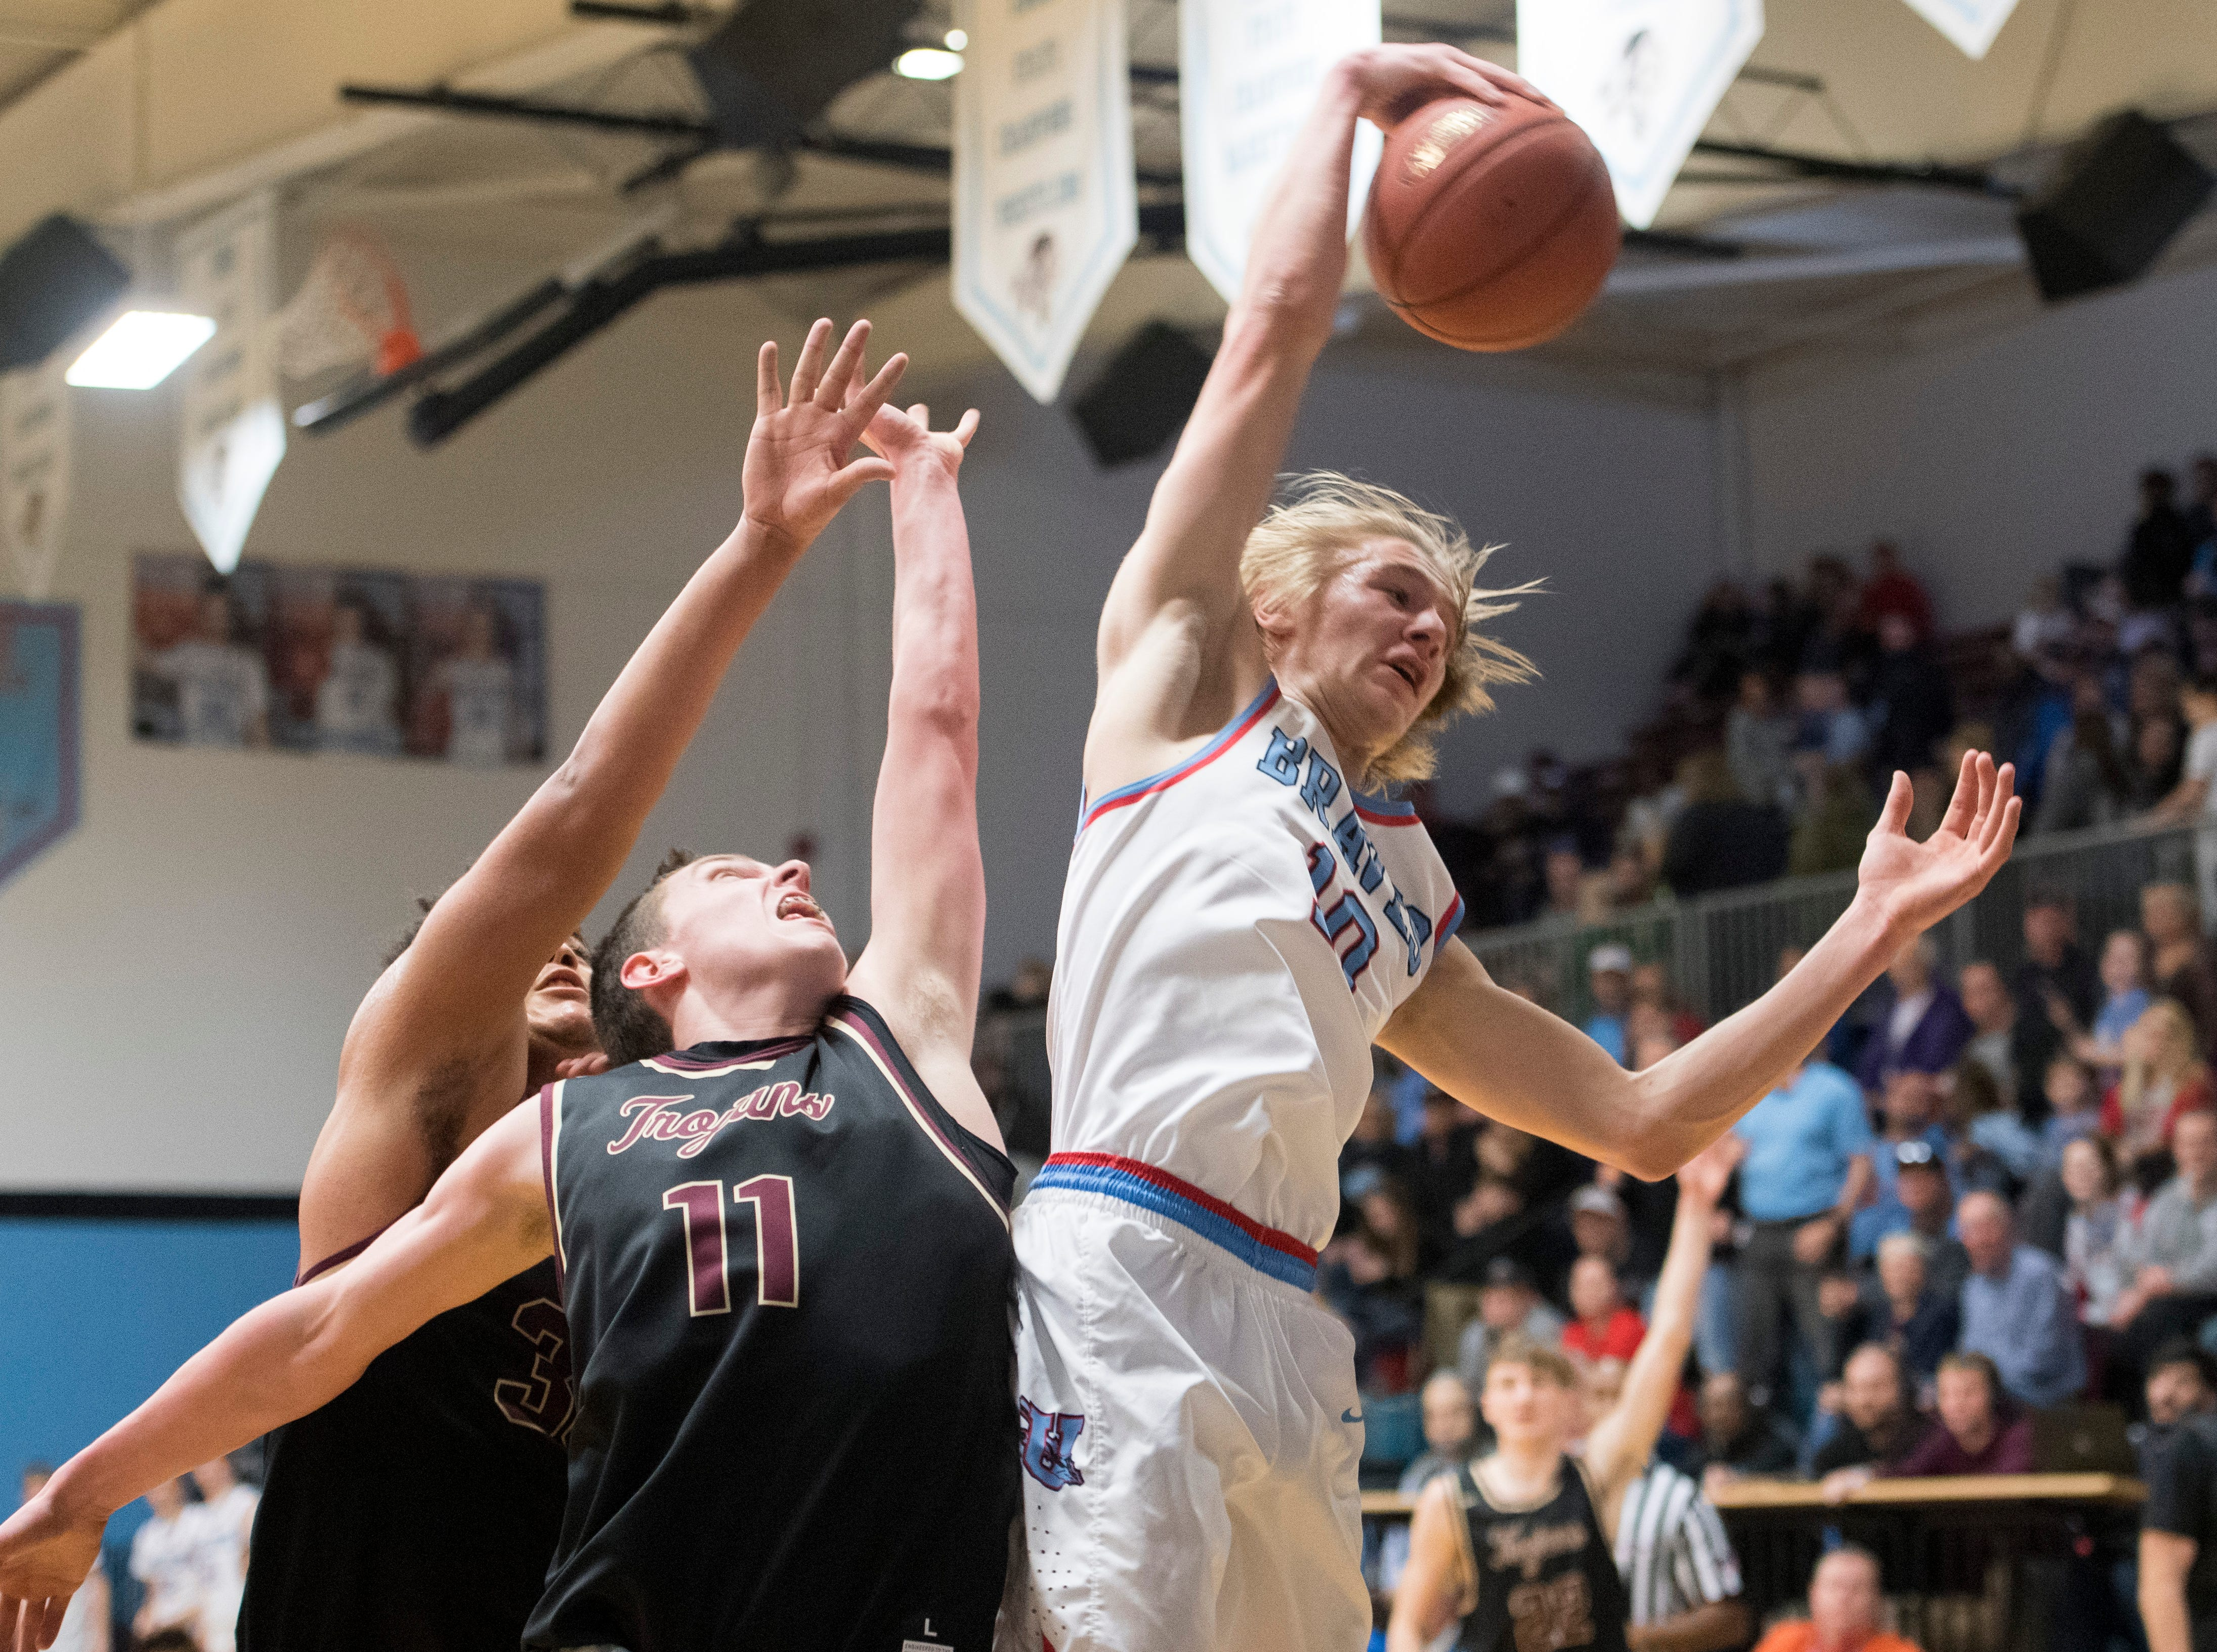 Union County's Cade Duncan (10) grabs a rebound during the Union County vs Webster County game at the Dr. Doug Hines Gymnasium in Morganfield, Ky. Tuesday, Feb. 19, 2019.